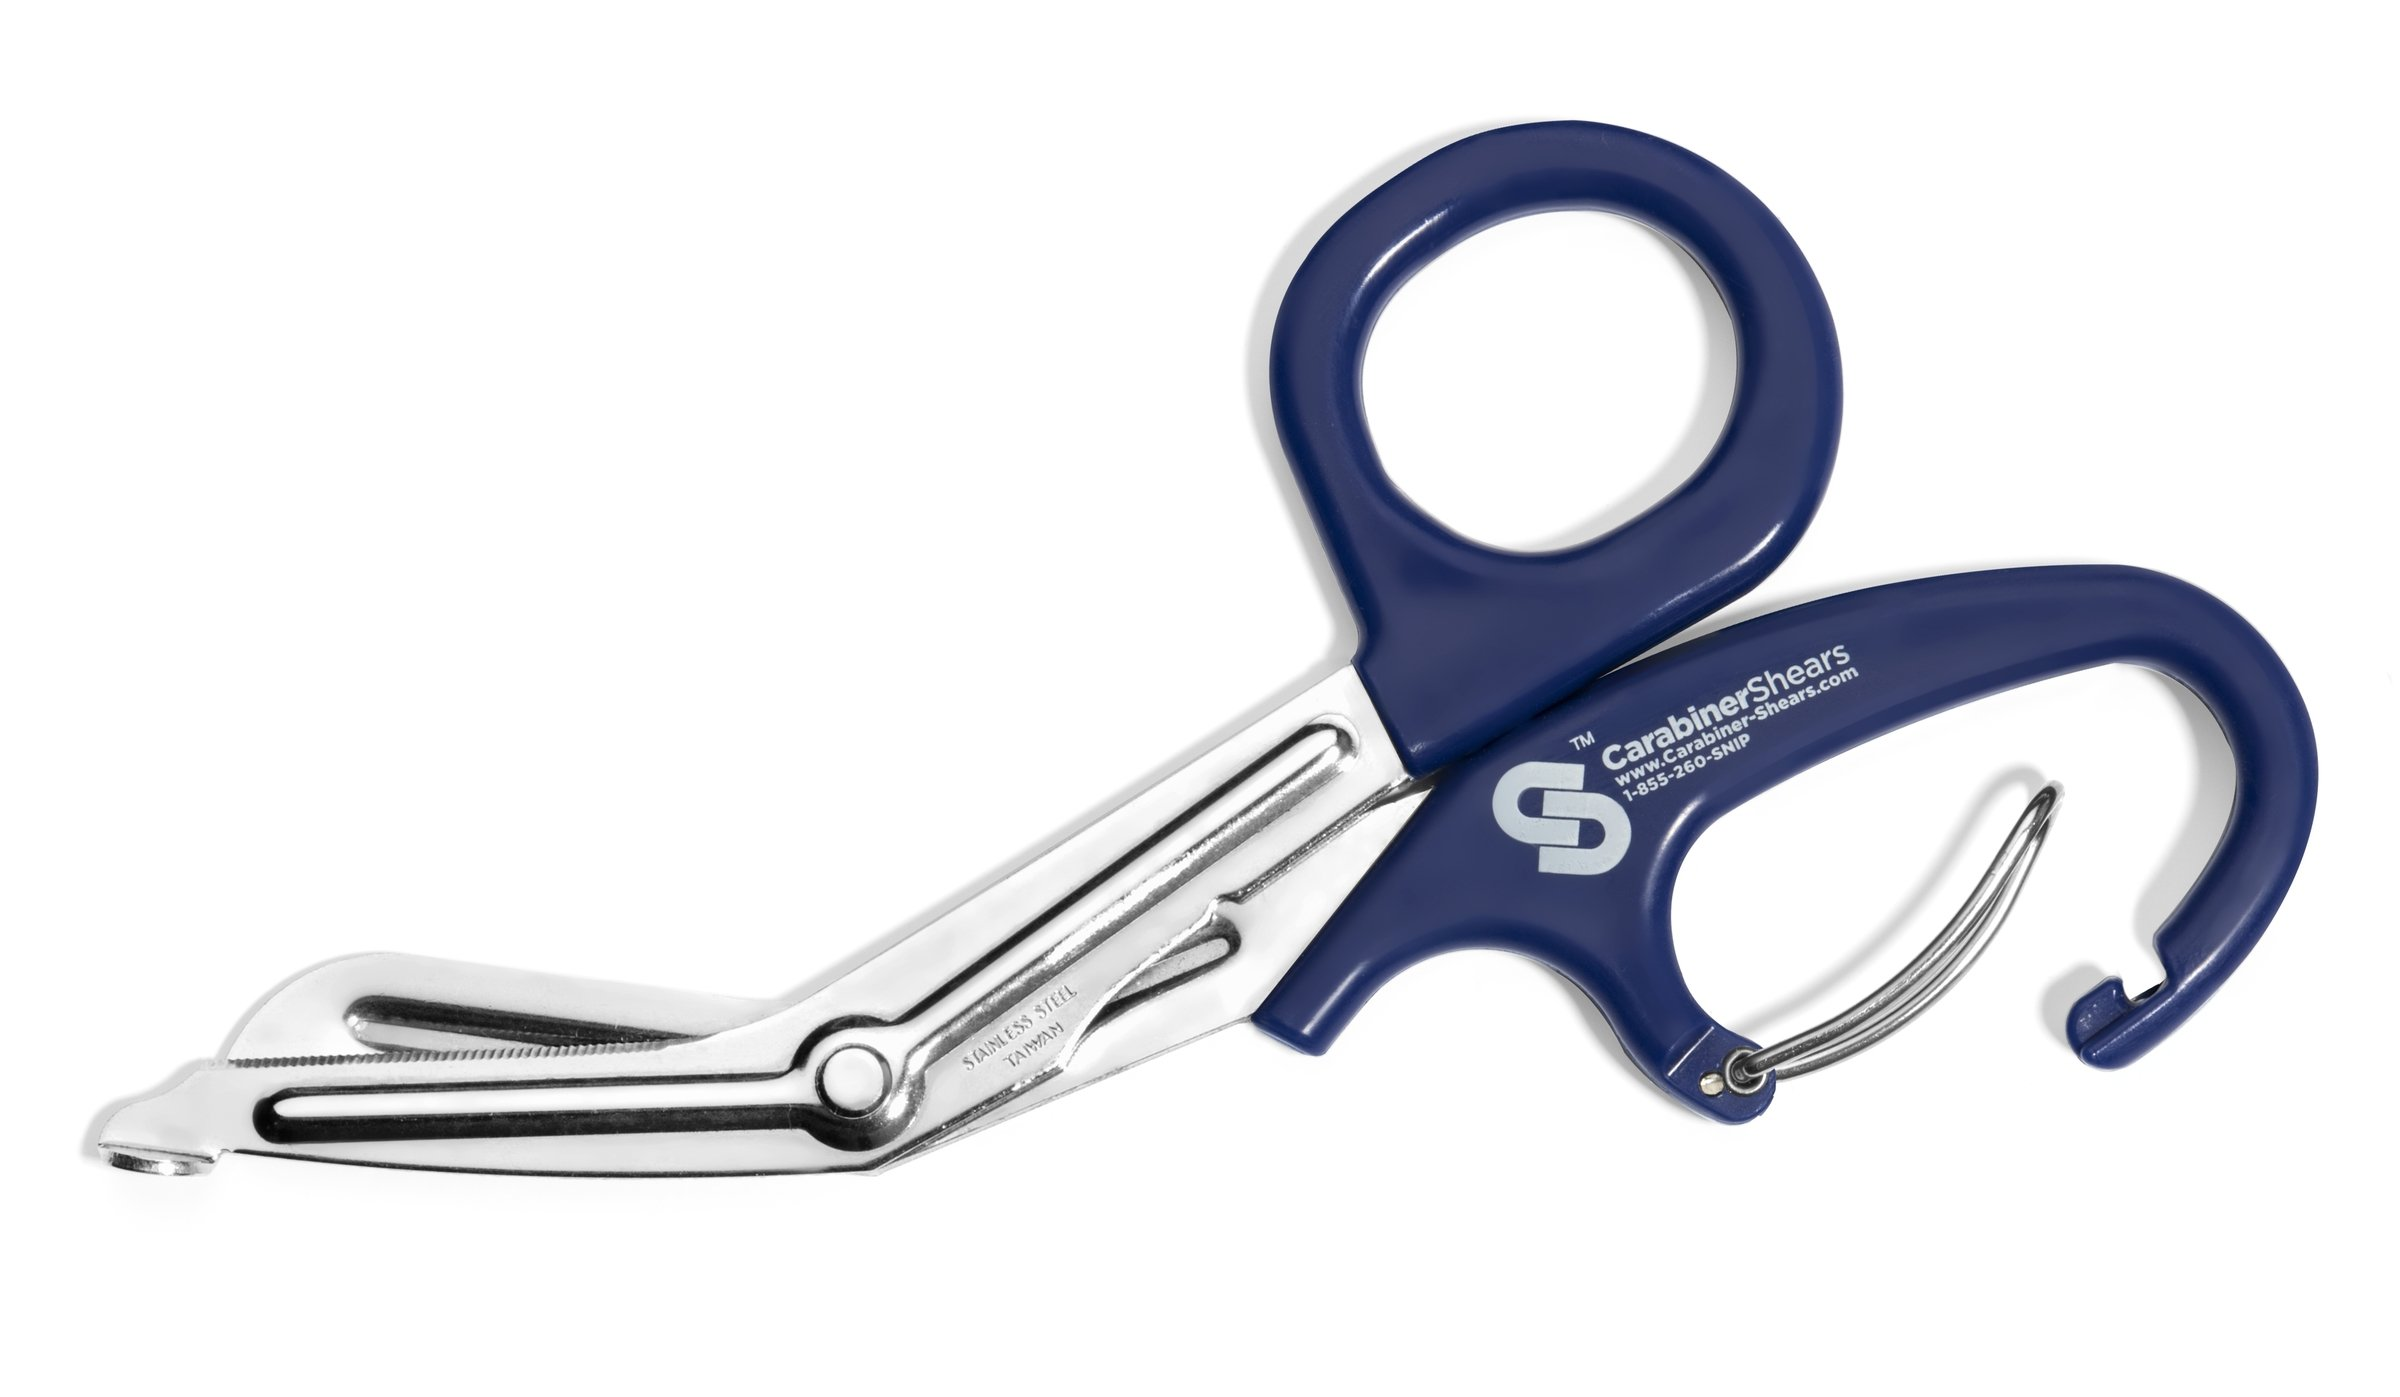 EMT Trauma Shears with Carabiner – 7.5″ Stainless Steel Bandage Scissors for Surgical, Medical & Nursing Purposes – Sharp Curved Scissor is Perfect for EMS, Doctors, Nurses, Cutting Bandages [Black]